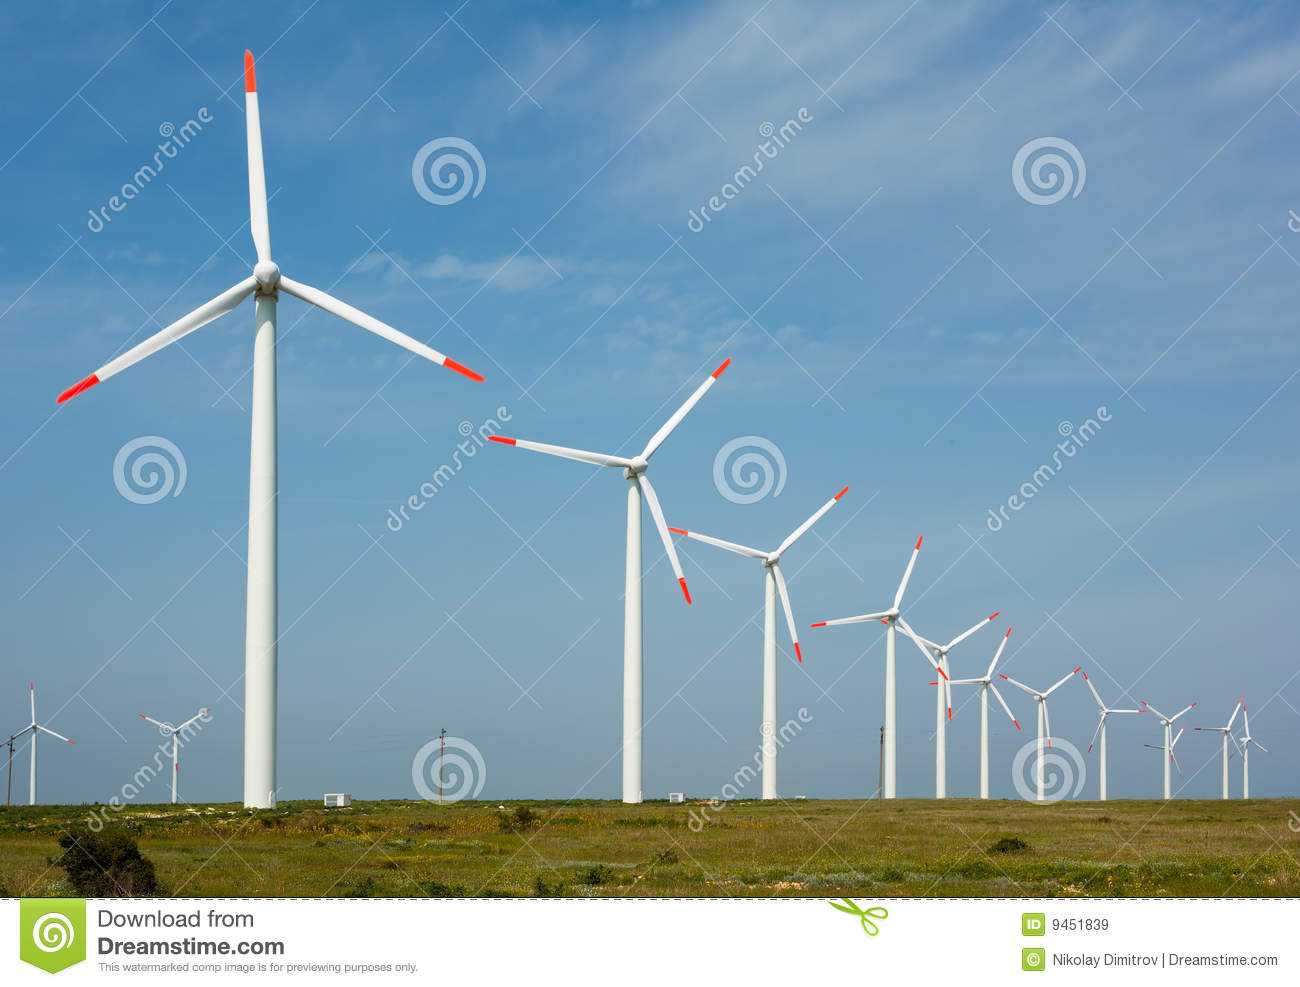 Wind power generation with many large turbines, technology preserving ...